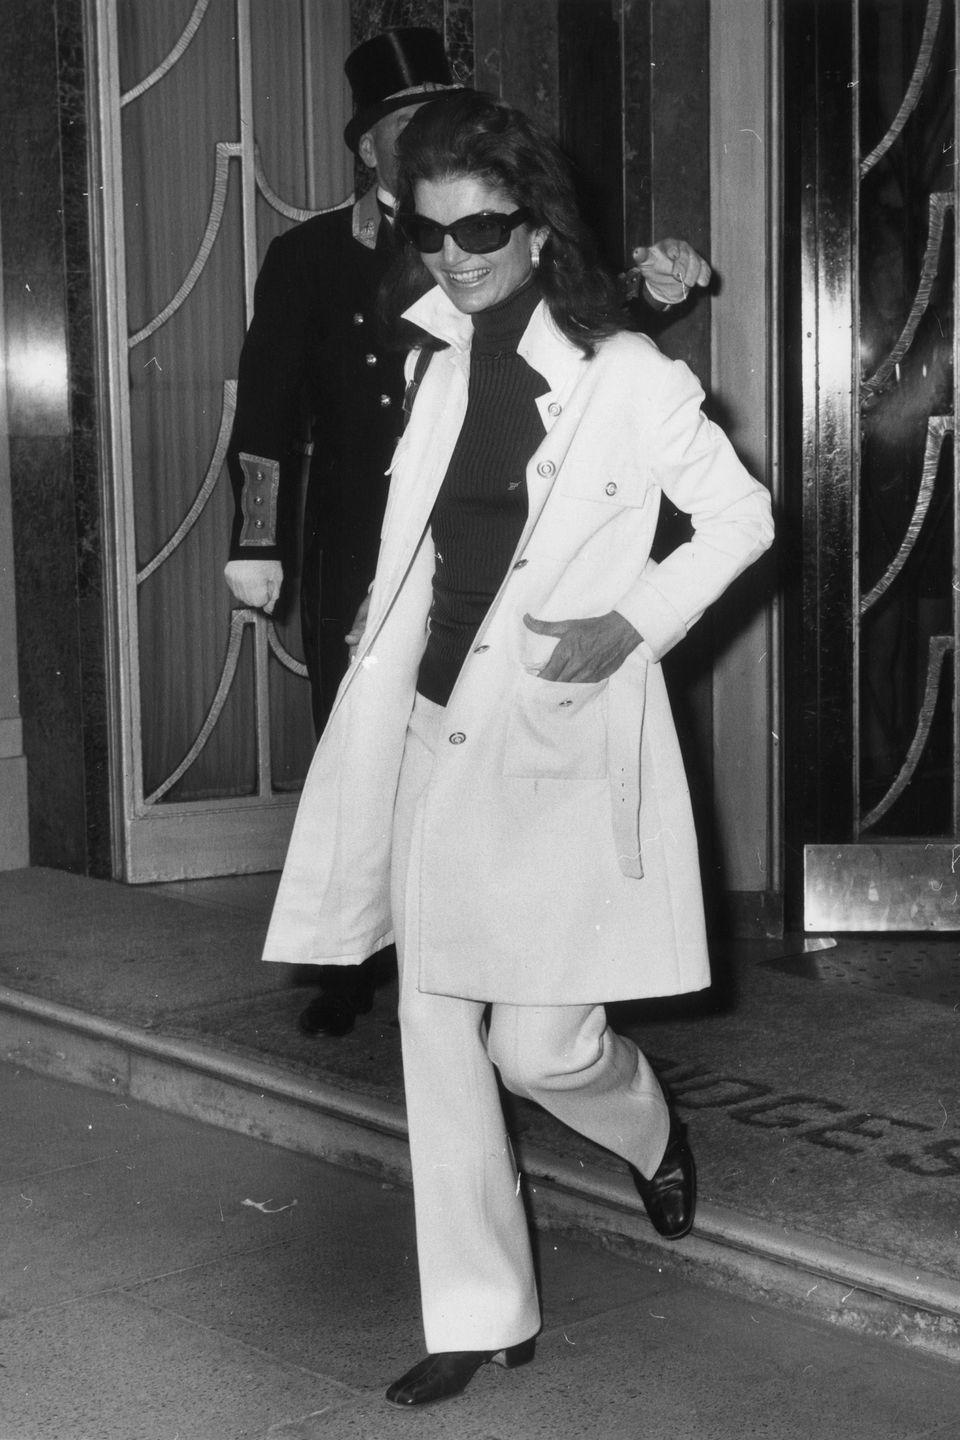 <p>Another iconic fashion moment, in a black turtleneck, trench and cool white trousers, while leaving the Claridges hotel in London in 1970.</p>